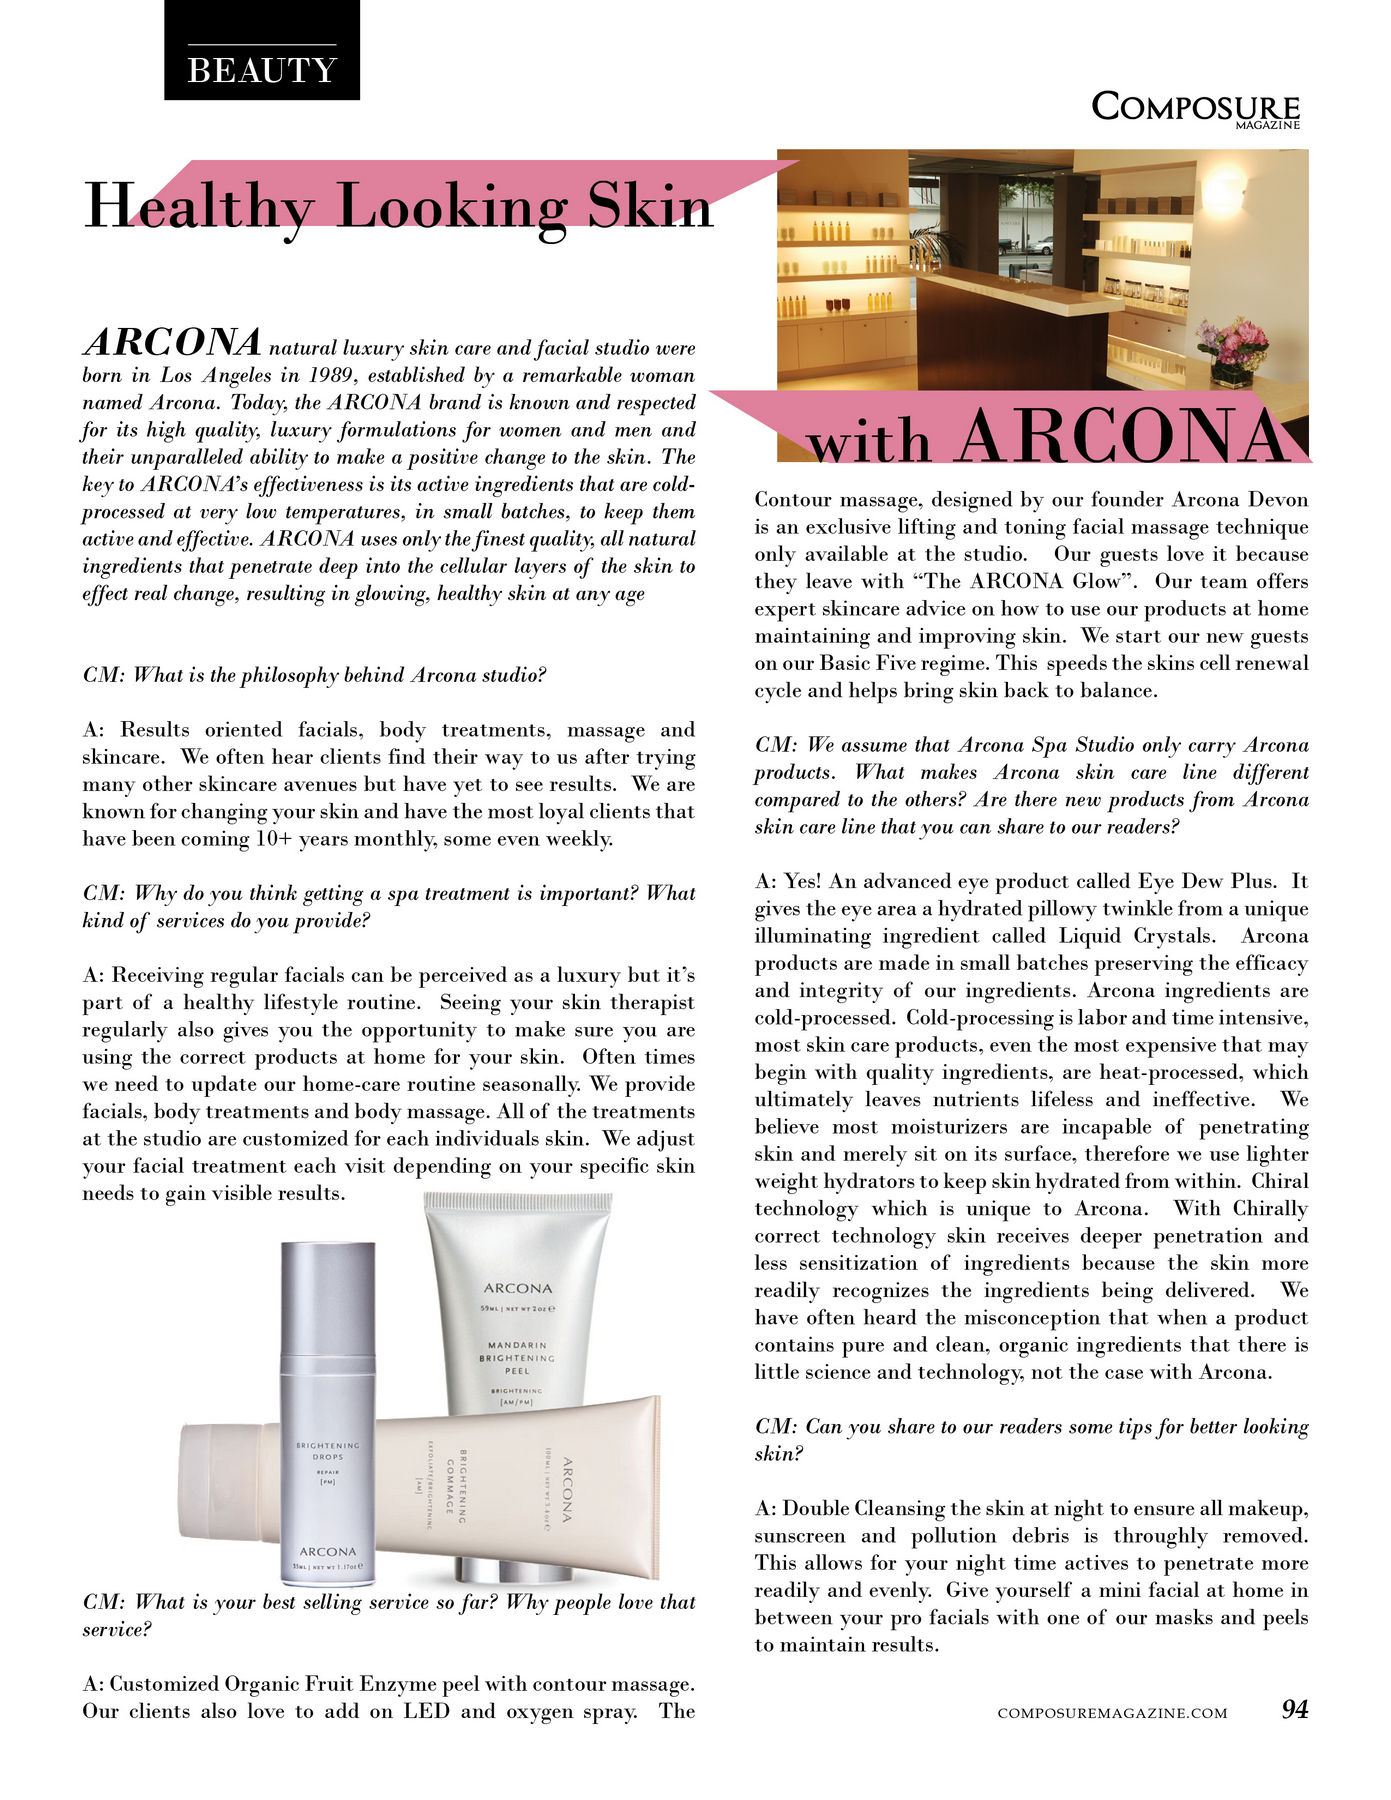 Healthy Looking Skin with ARCONA